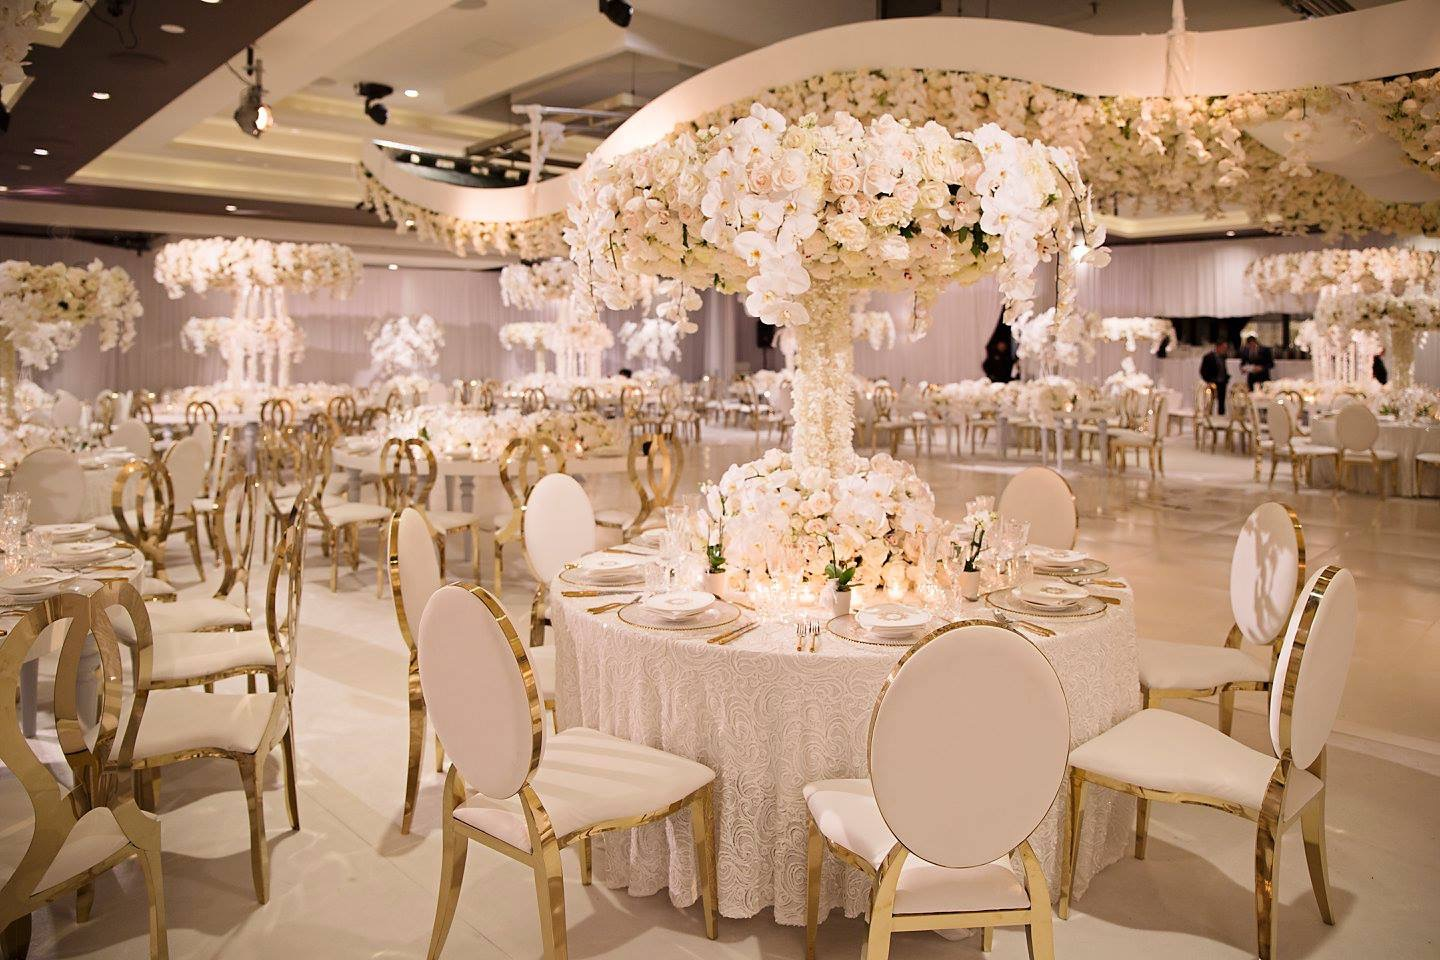 le_montage_all_white_wedding_luxury_linen_fresh_floral_centrepieces.JPG